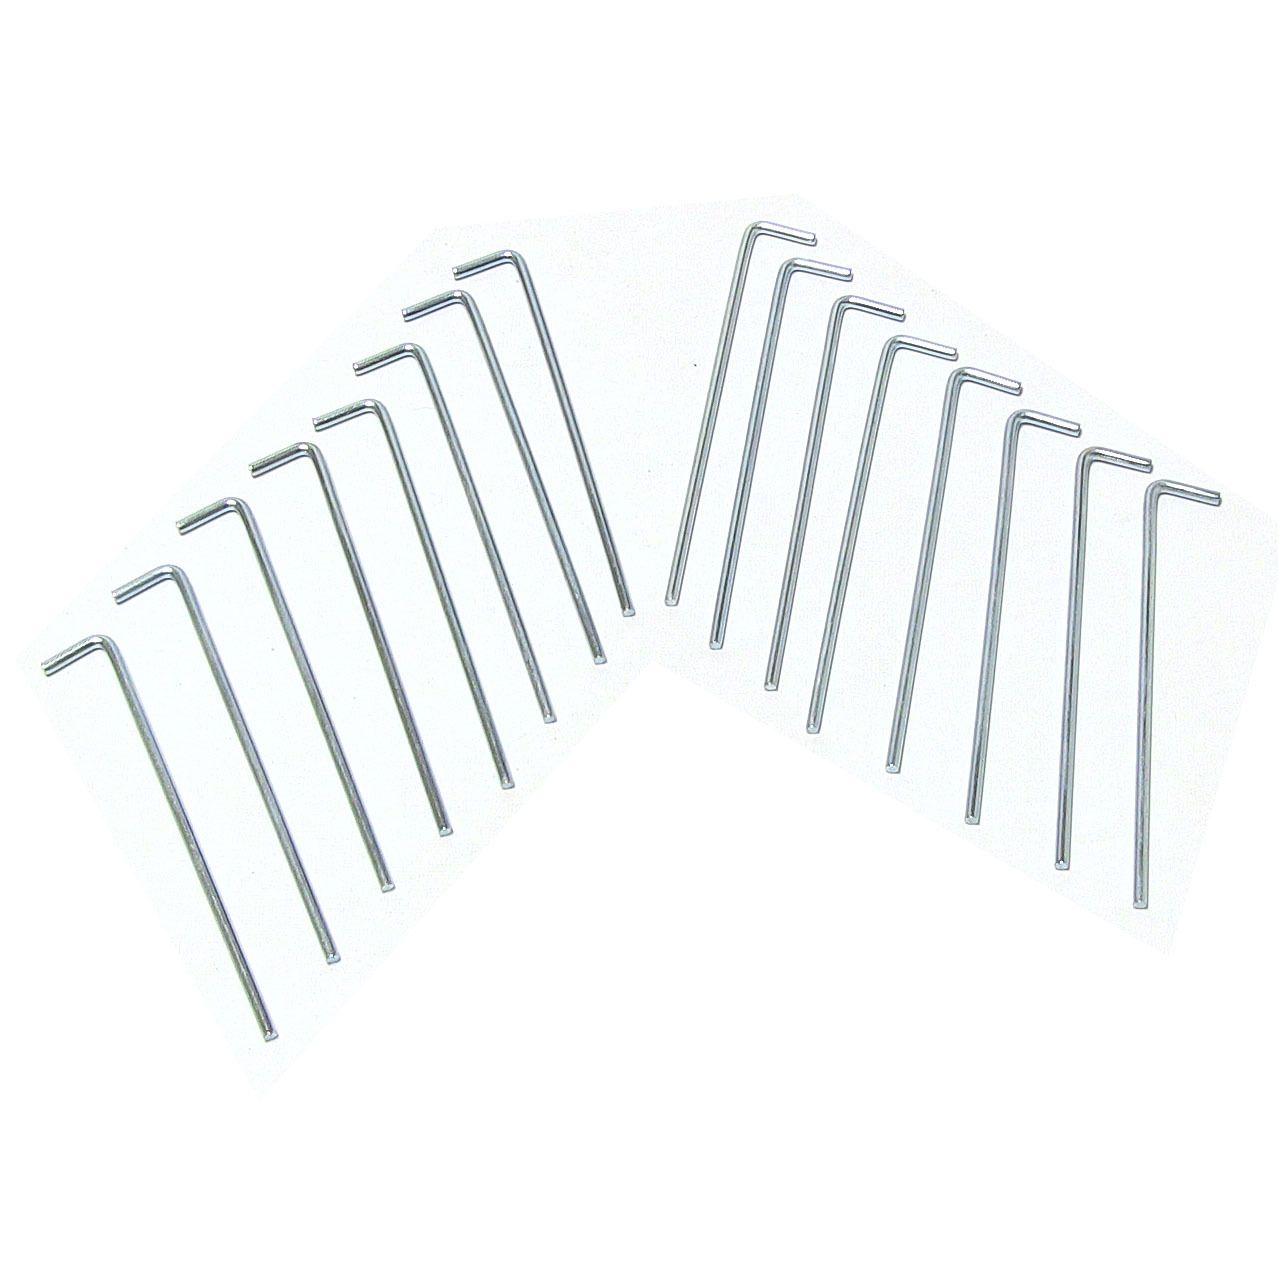 Sunnydaze Canopy/Tent Stakes